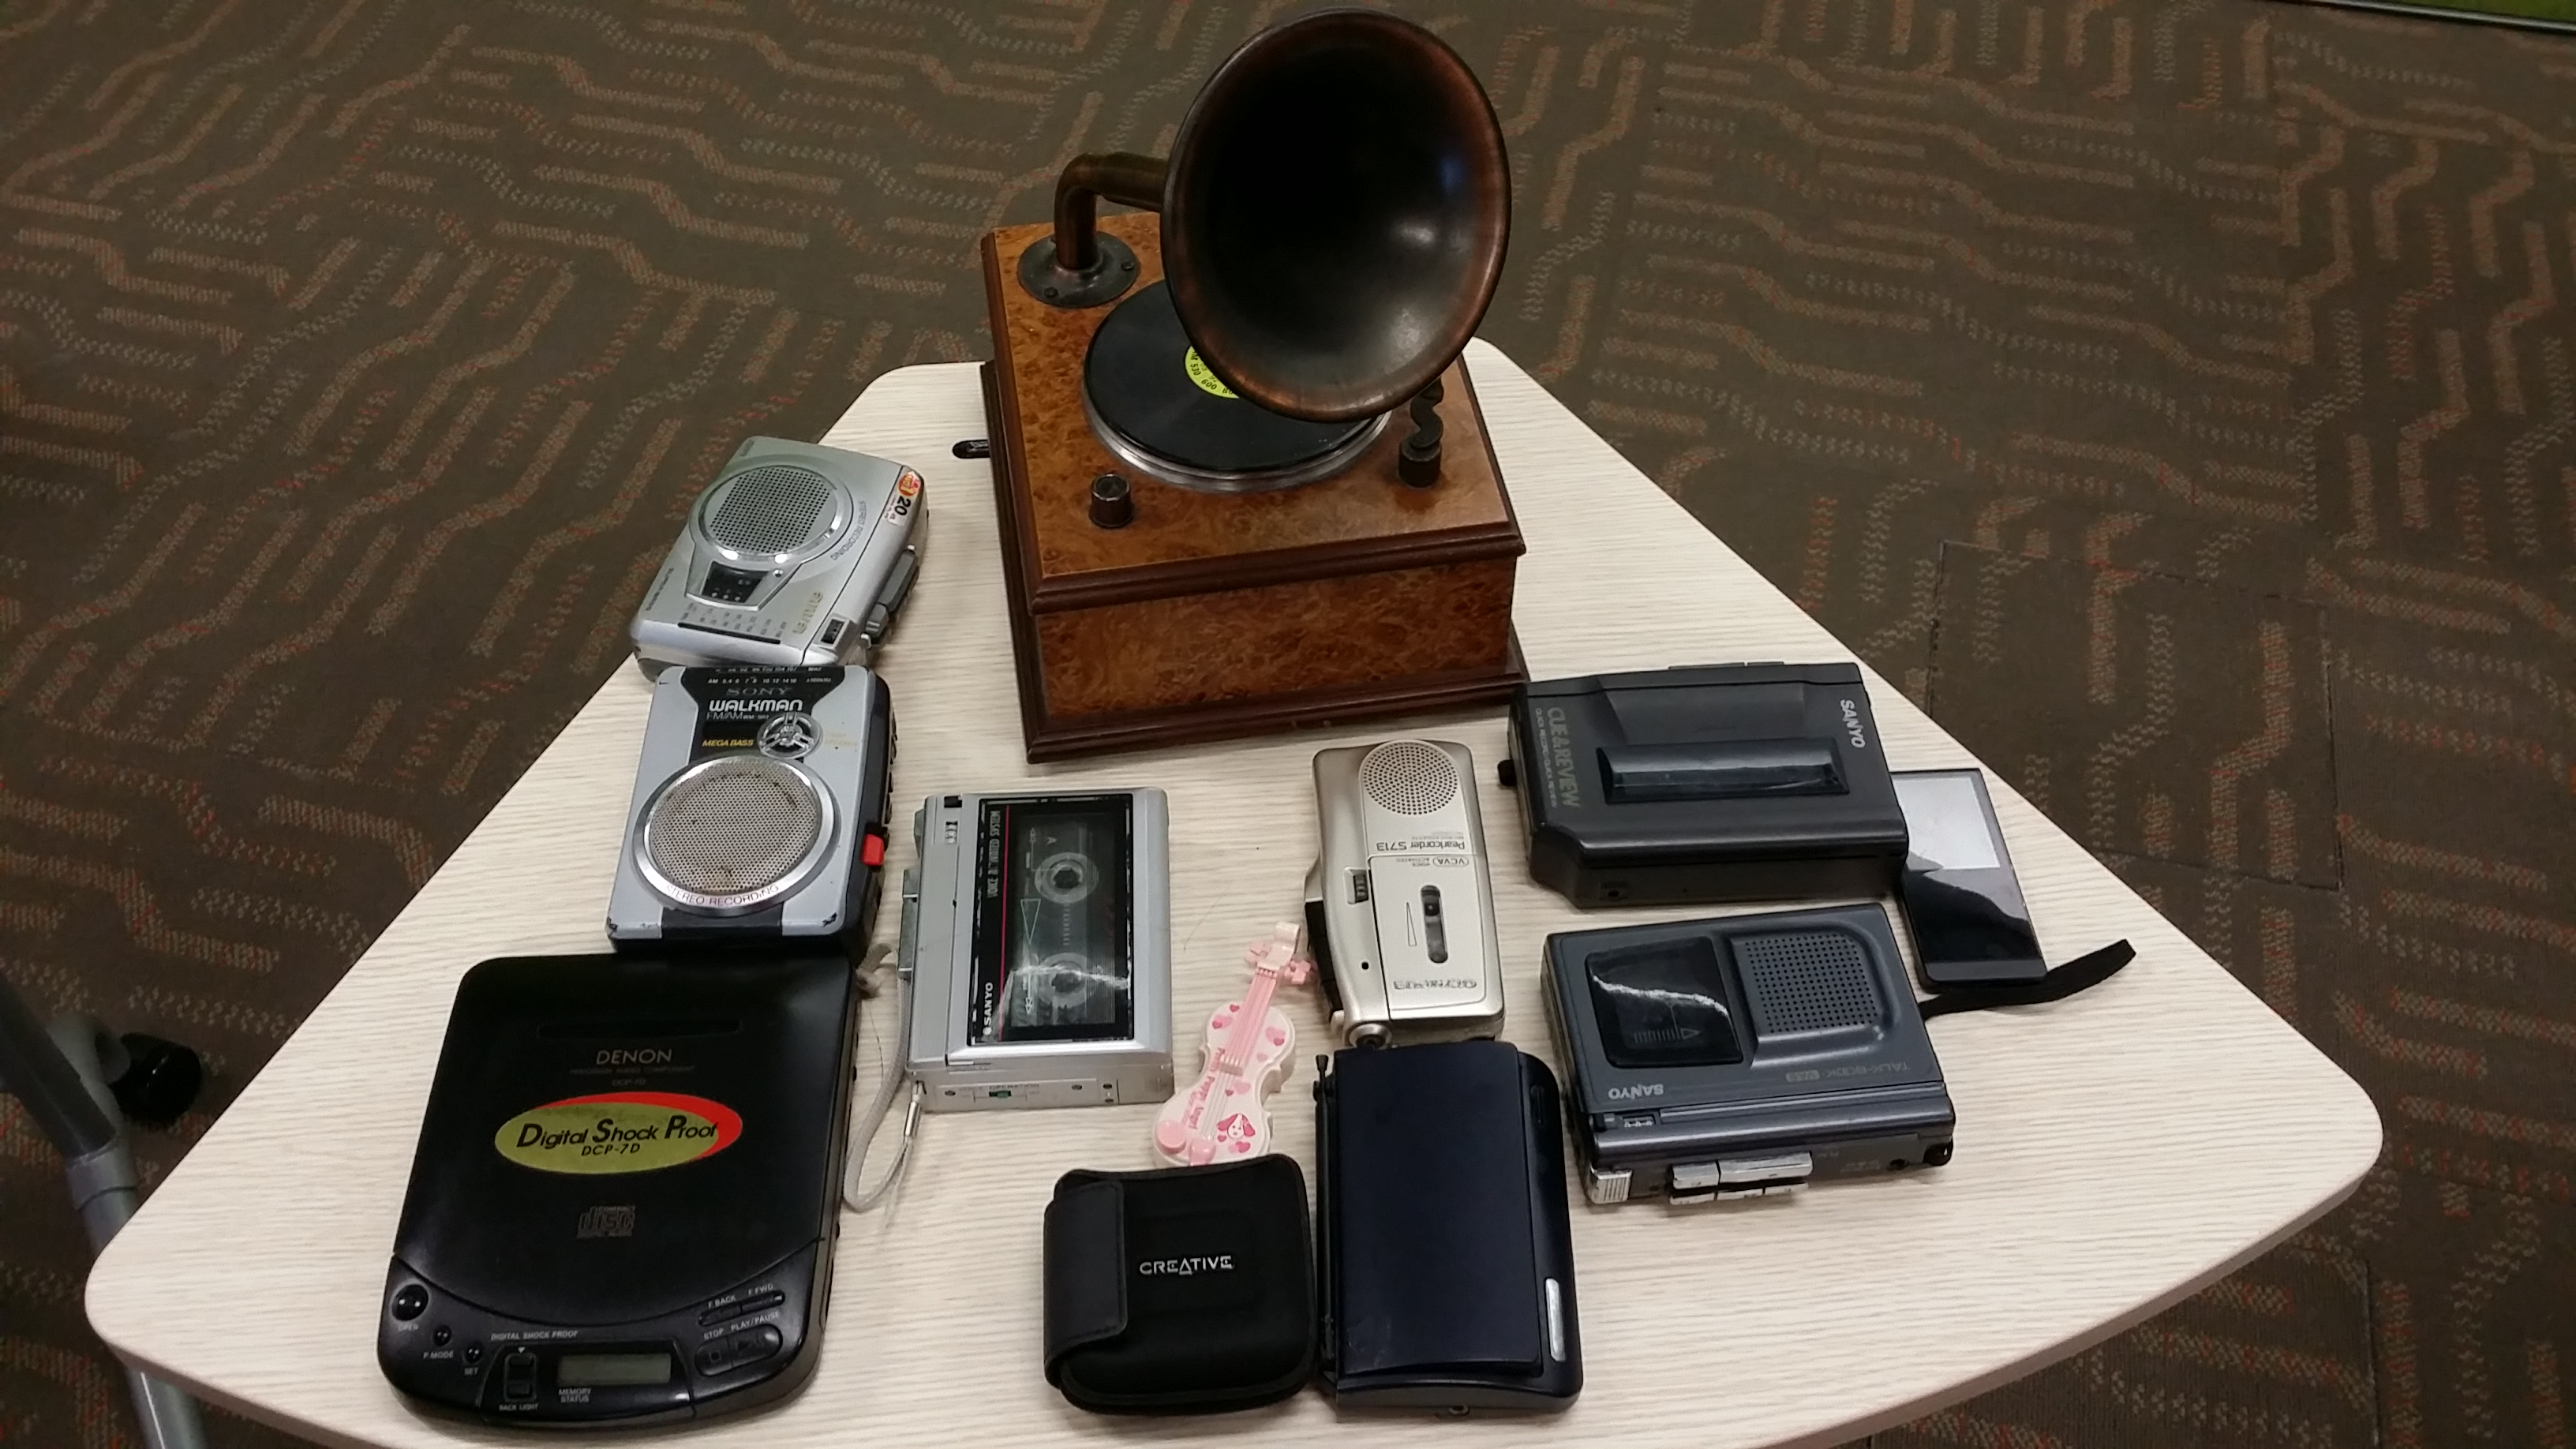 Technology S Progress From Past To Present